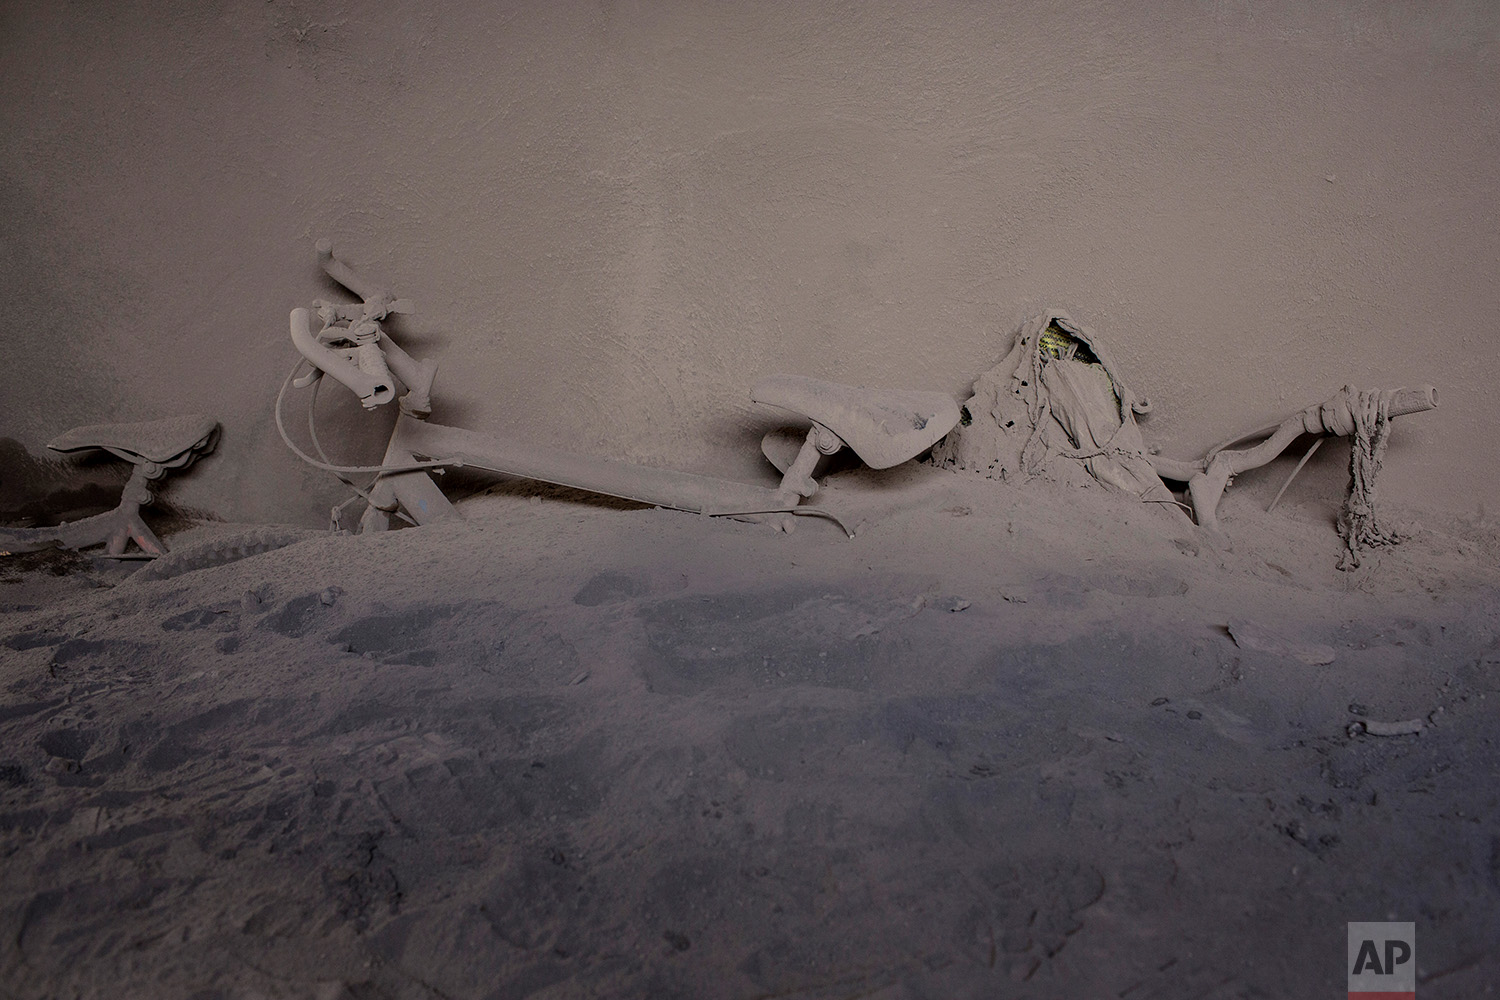 This June 9, 2018 photo shows bicycles leaning against a wall in the entry hall of a home entombed with volcanic ash spewed by the Volcan de Fuego or Volcano of Fire, in San Miguel Los Lotes, Guatemala. (AP Photo/Rodrigo Abd)